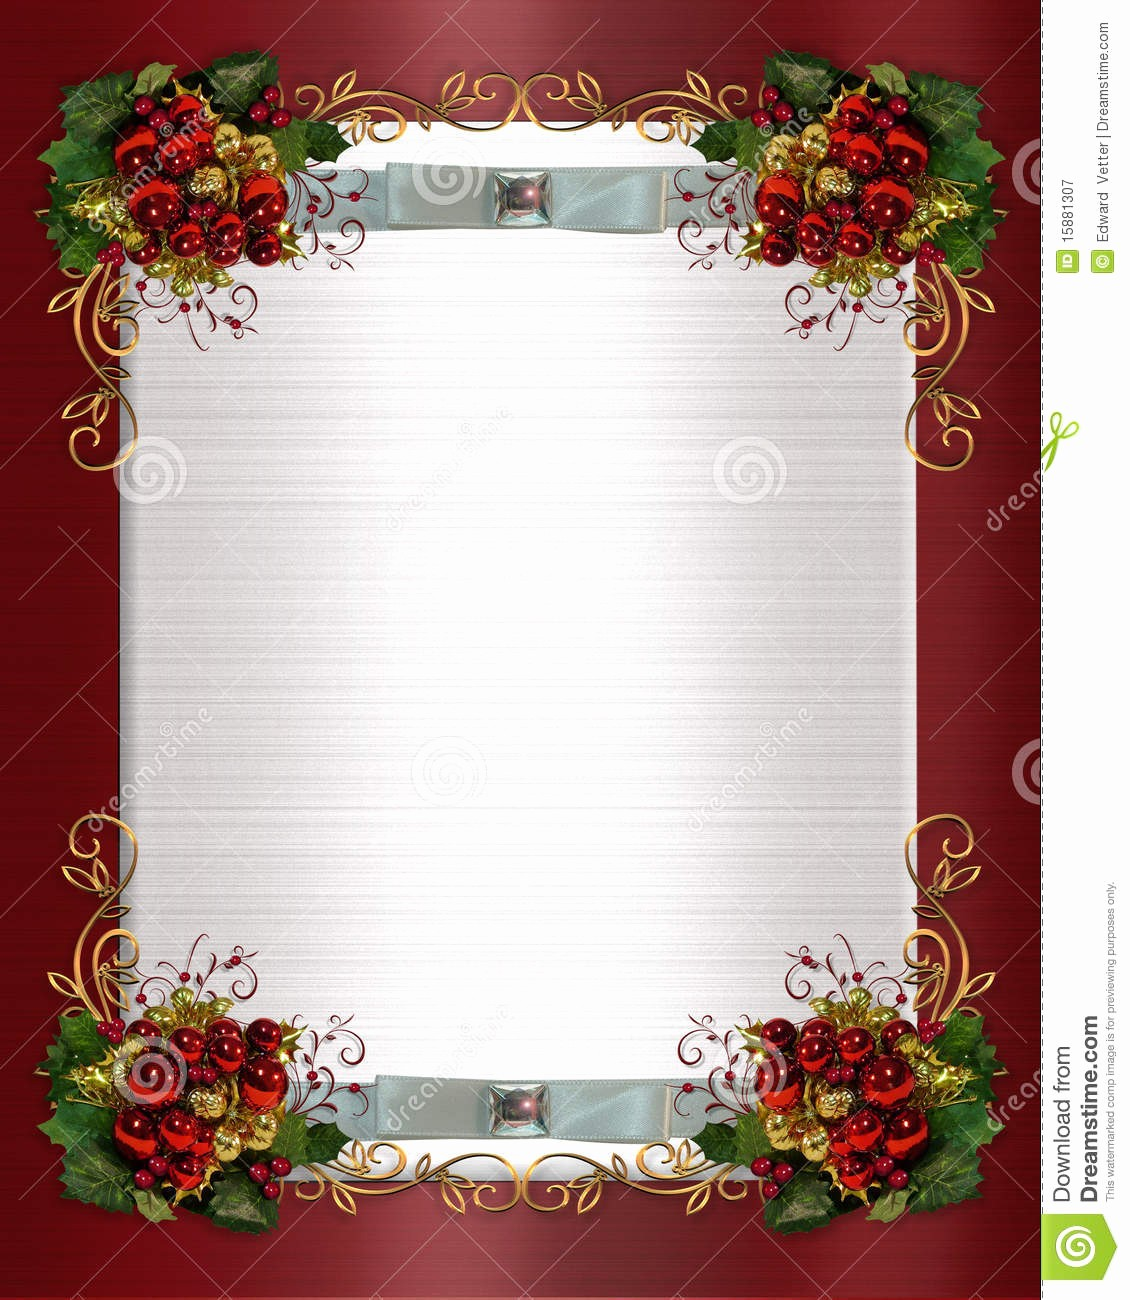 Christmas Invitations Templates Free Microsoft Awesome Christmas Party Invitation Templates Free Download